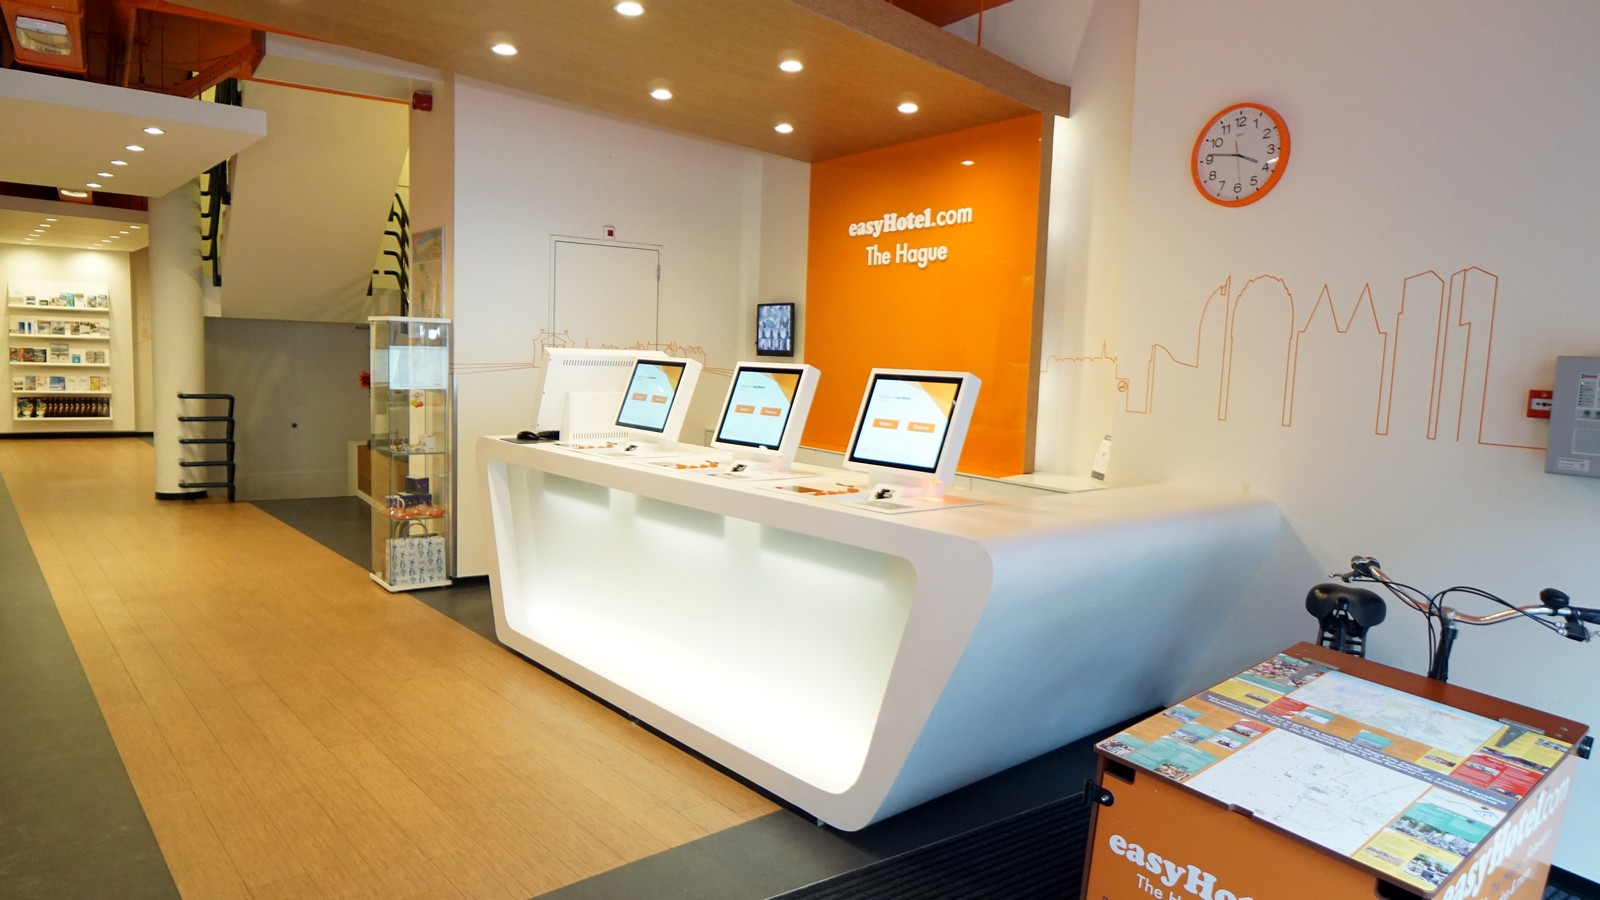 easyHotel - The Hague City Centre - Starting from € 49 per night